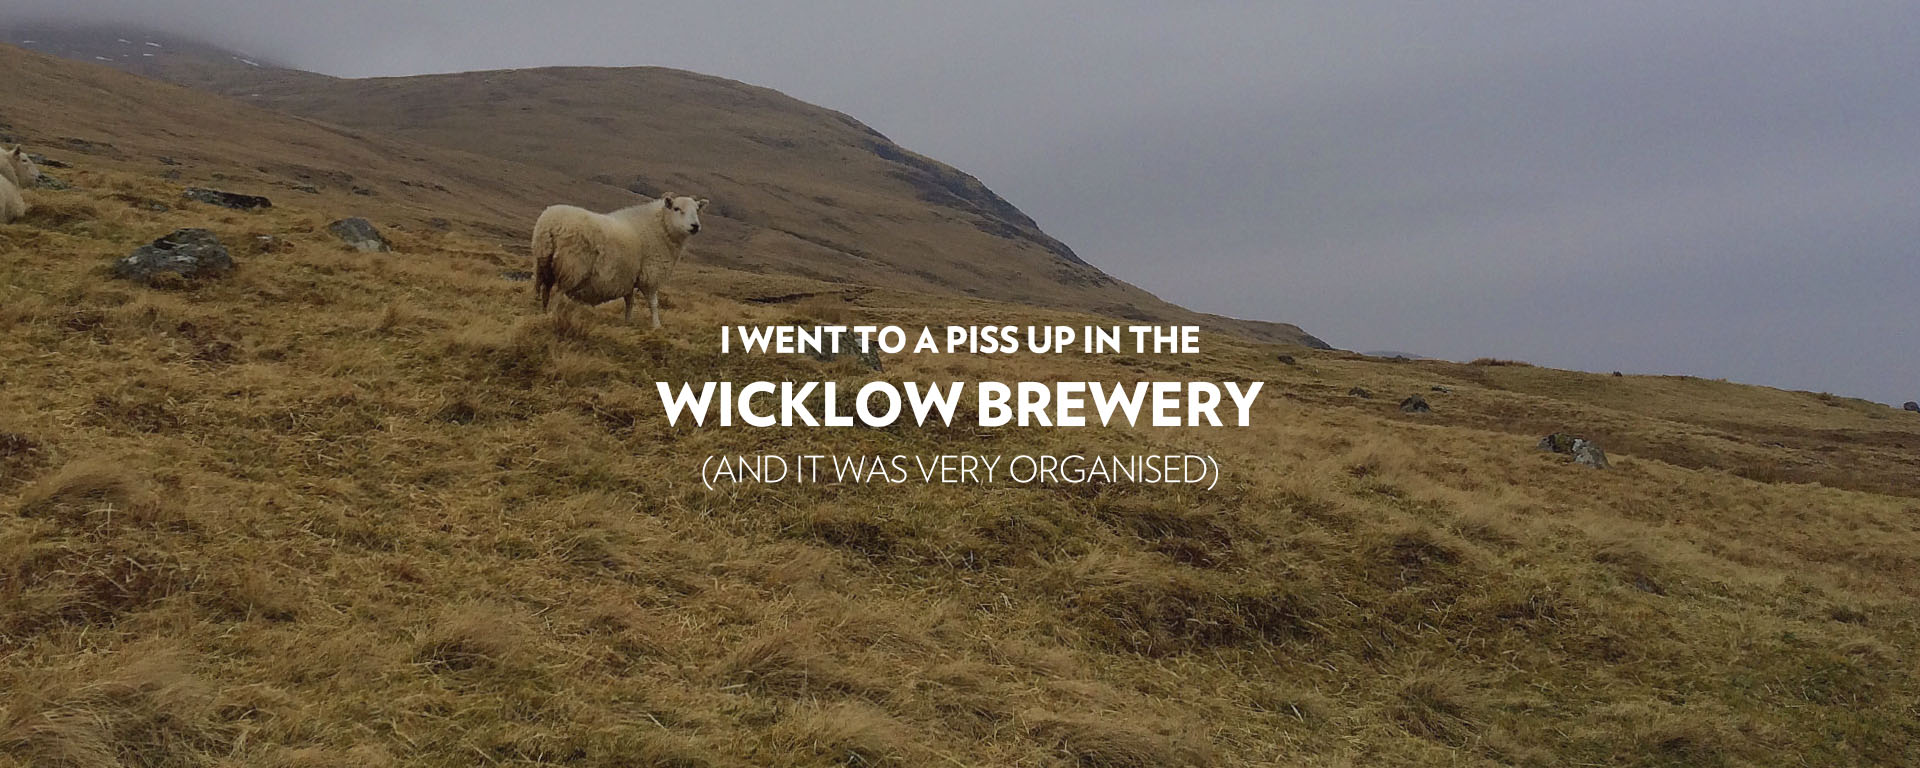 Wicklow Brewery Tone of Voice. Sweet is a food packaging, communications and graphic design agency that can help you grow your brand.